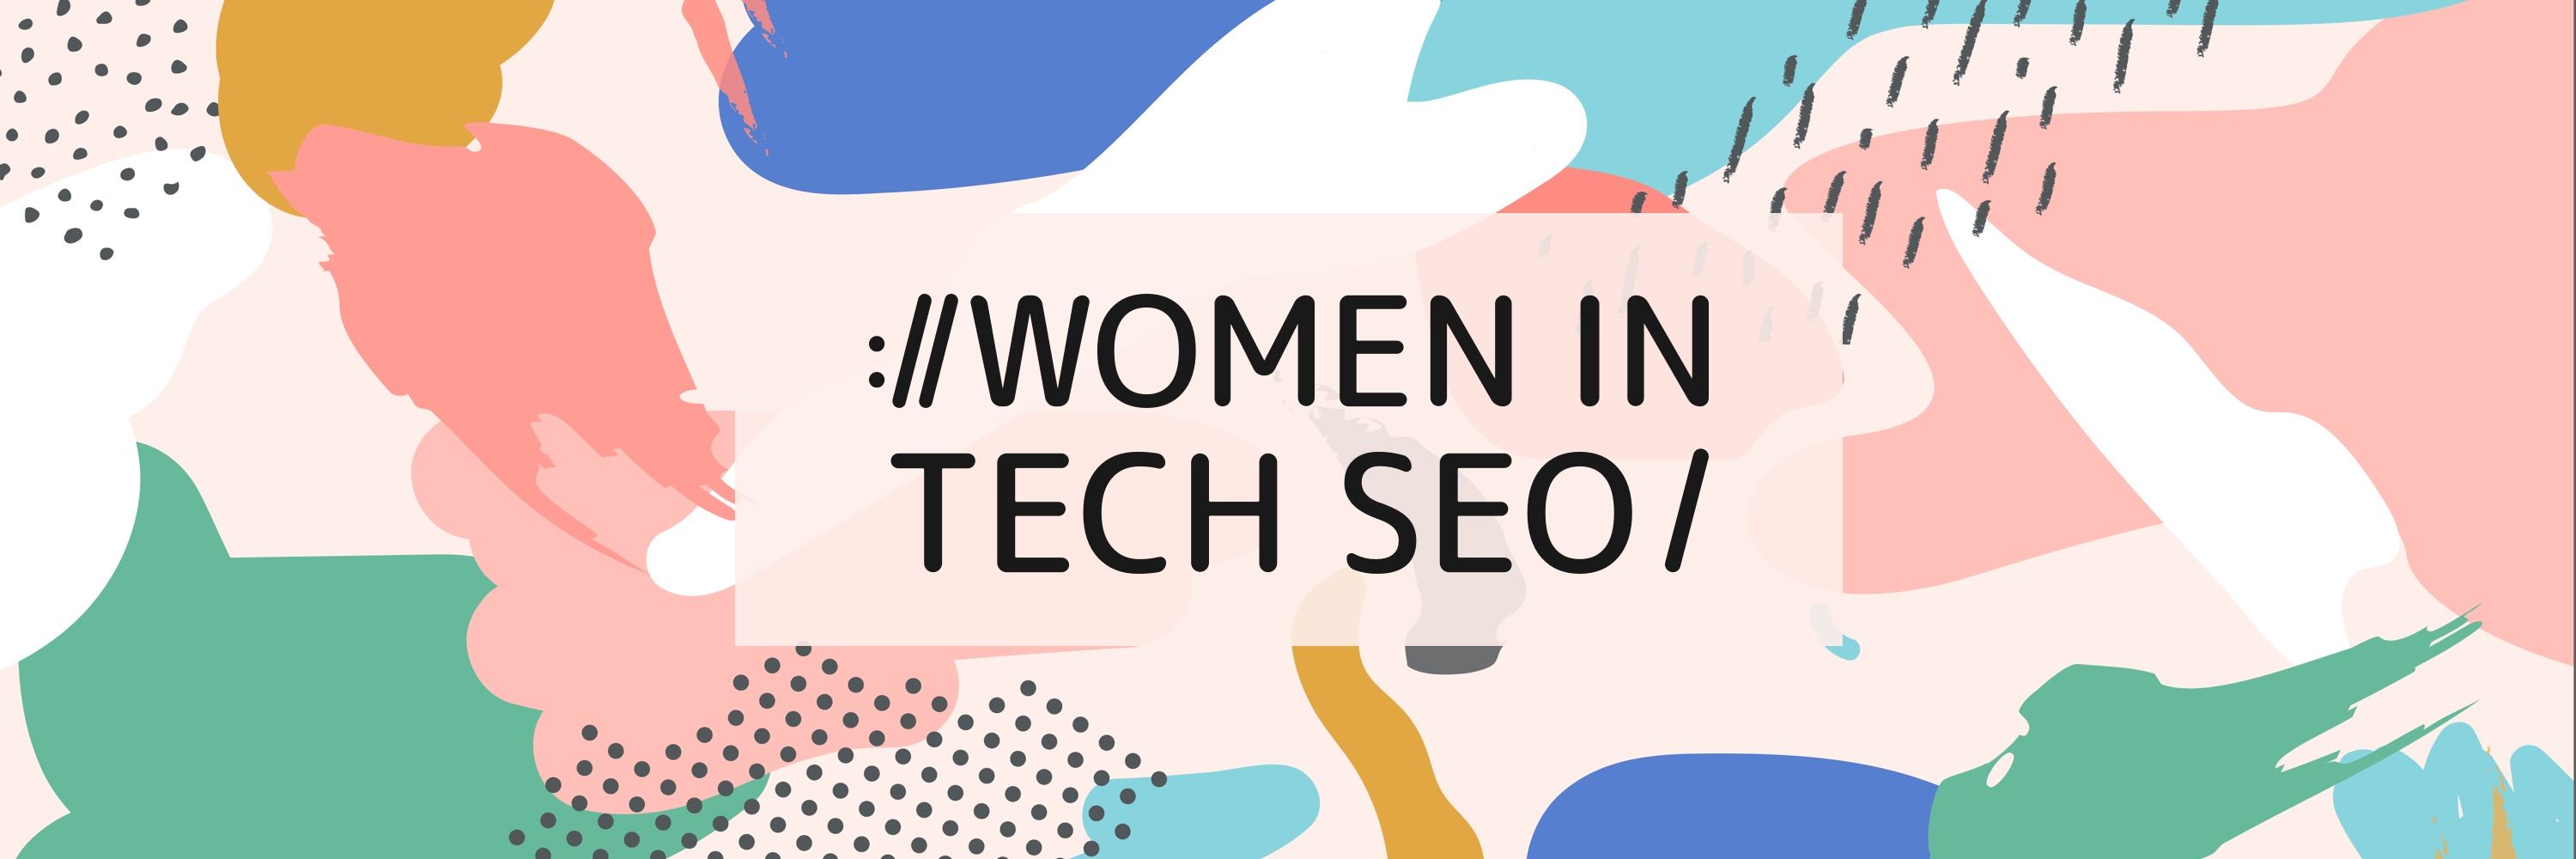 Women in Tech SEO - Freelancers